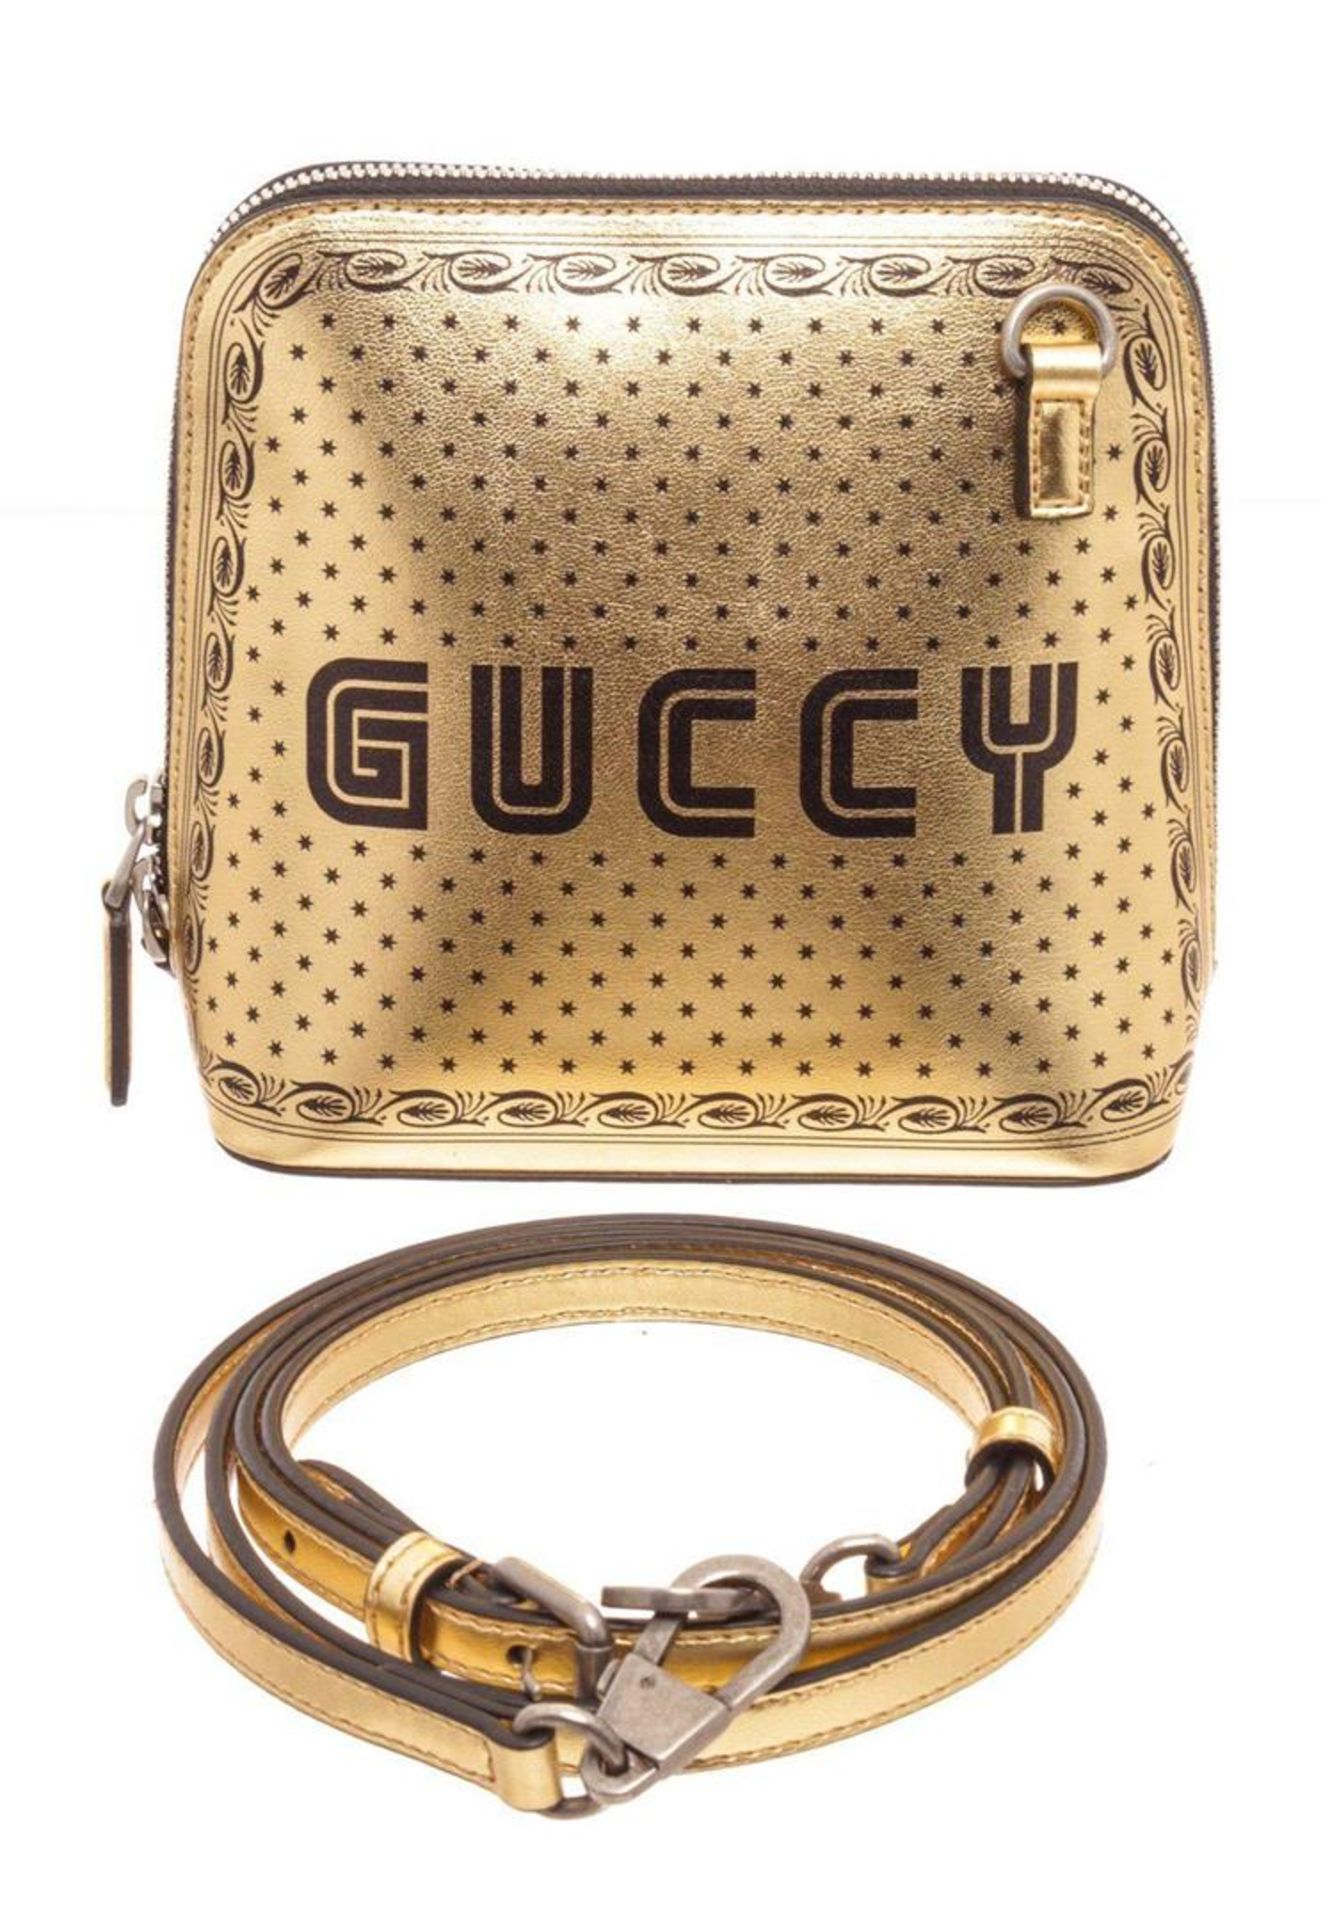 Gucci Gold Dome Crossbody Bag